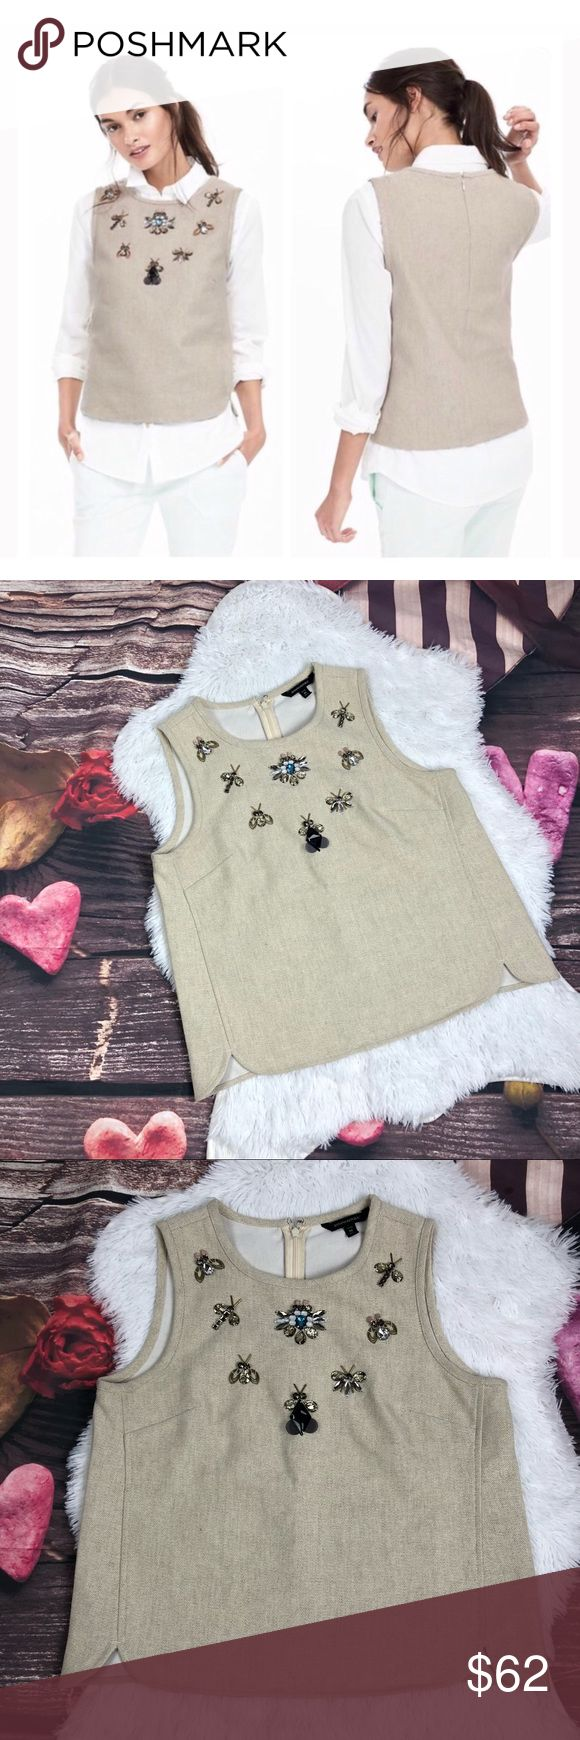 Banana republic bug Embellished top Make a statement with this tank - jewel bug embellishments makes this sleeveless high neck tank sparkle!. Invisible back zipper. Material: Cotton/Linen. In great condition size medium petite Banana Republic Tops Blouses